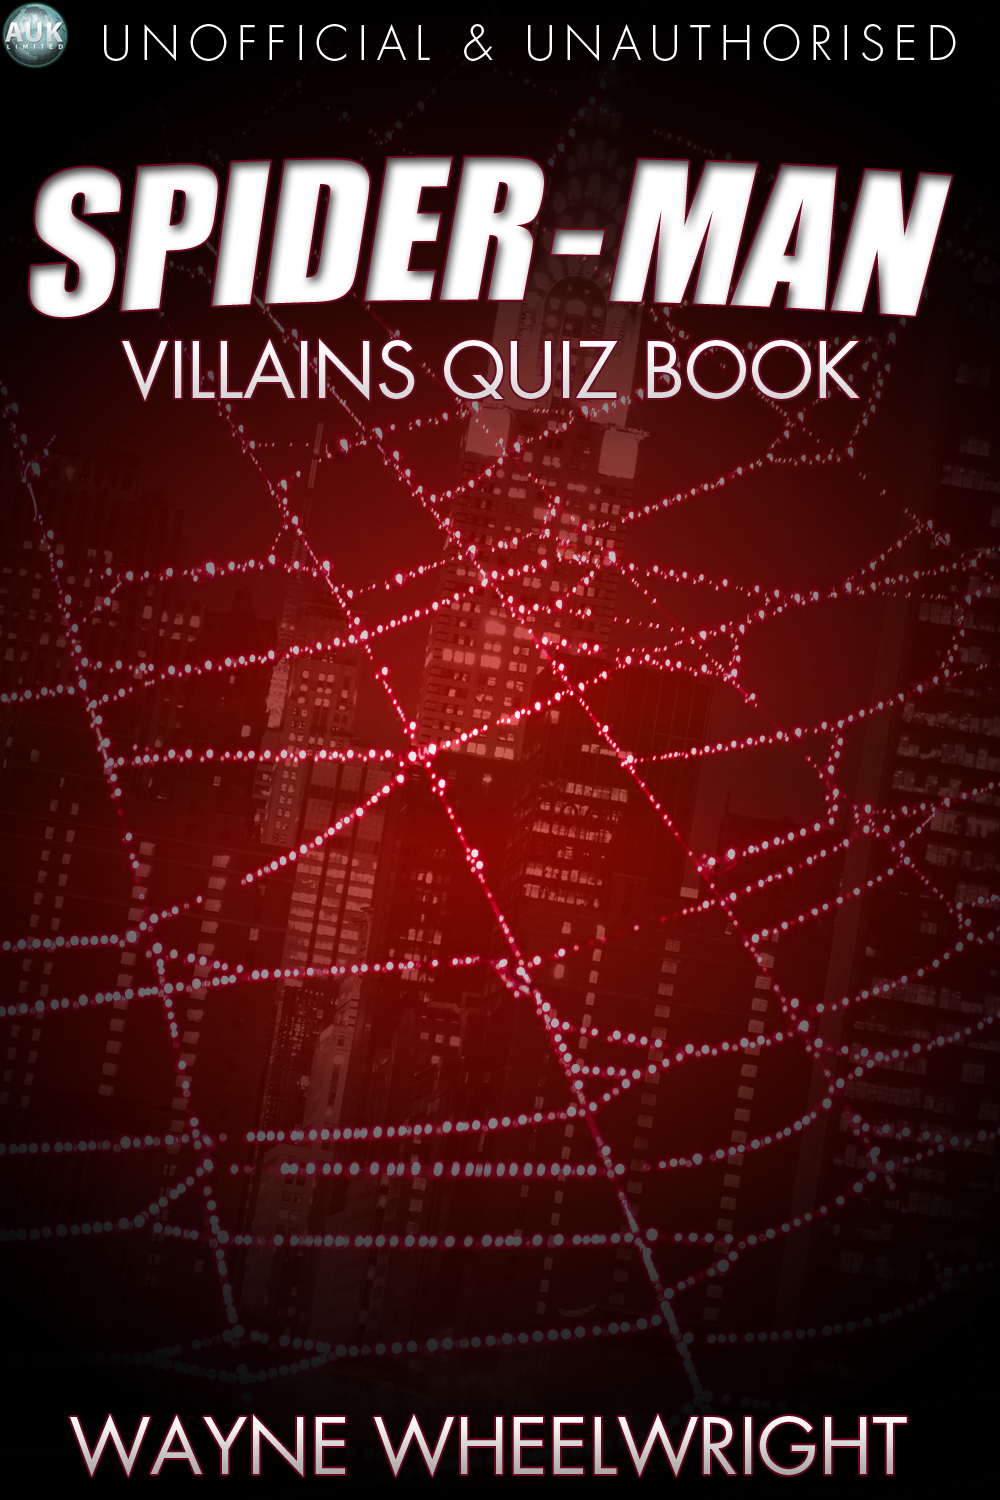 The Spider-Man Villains Quiz Book